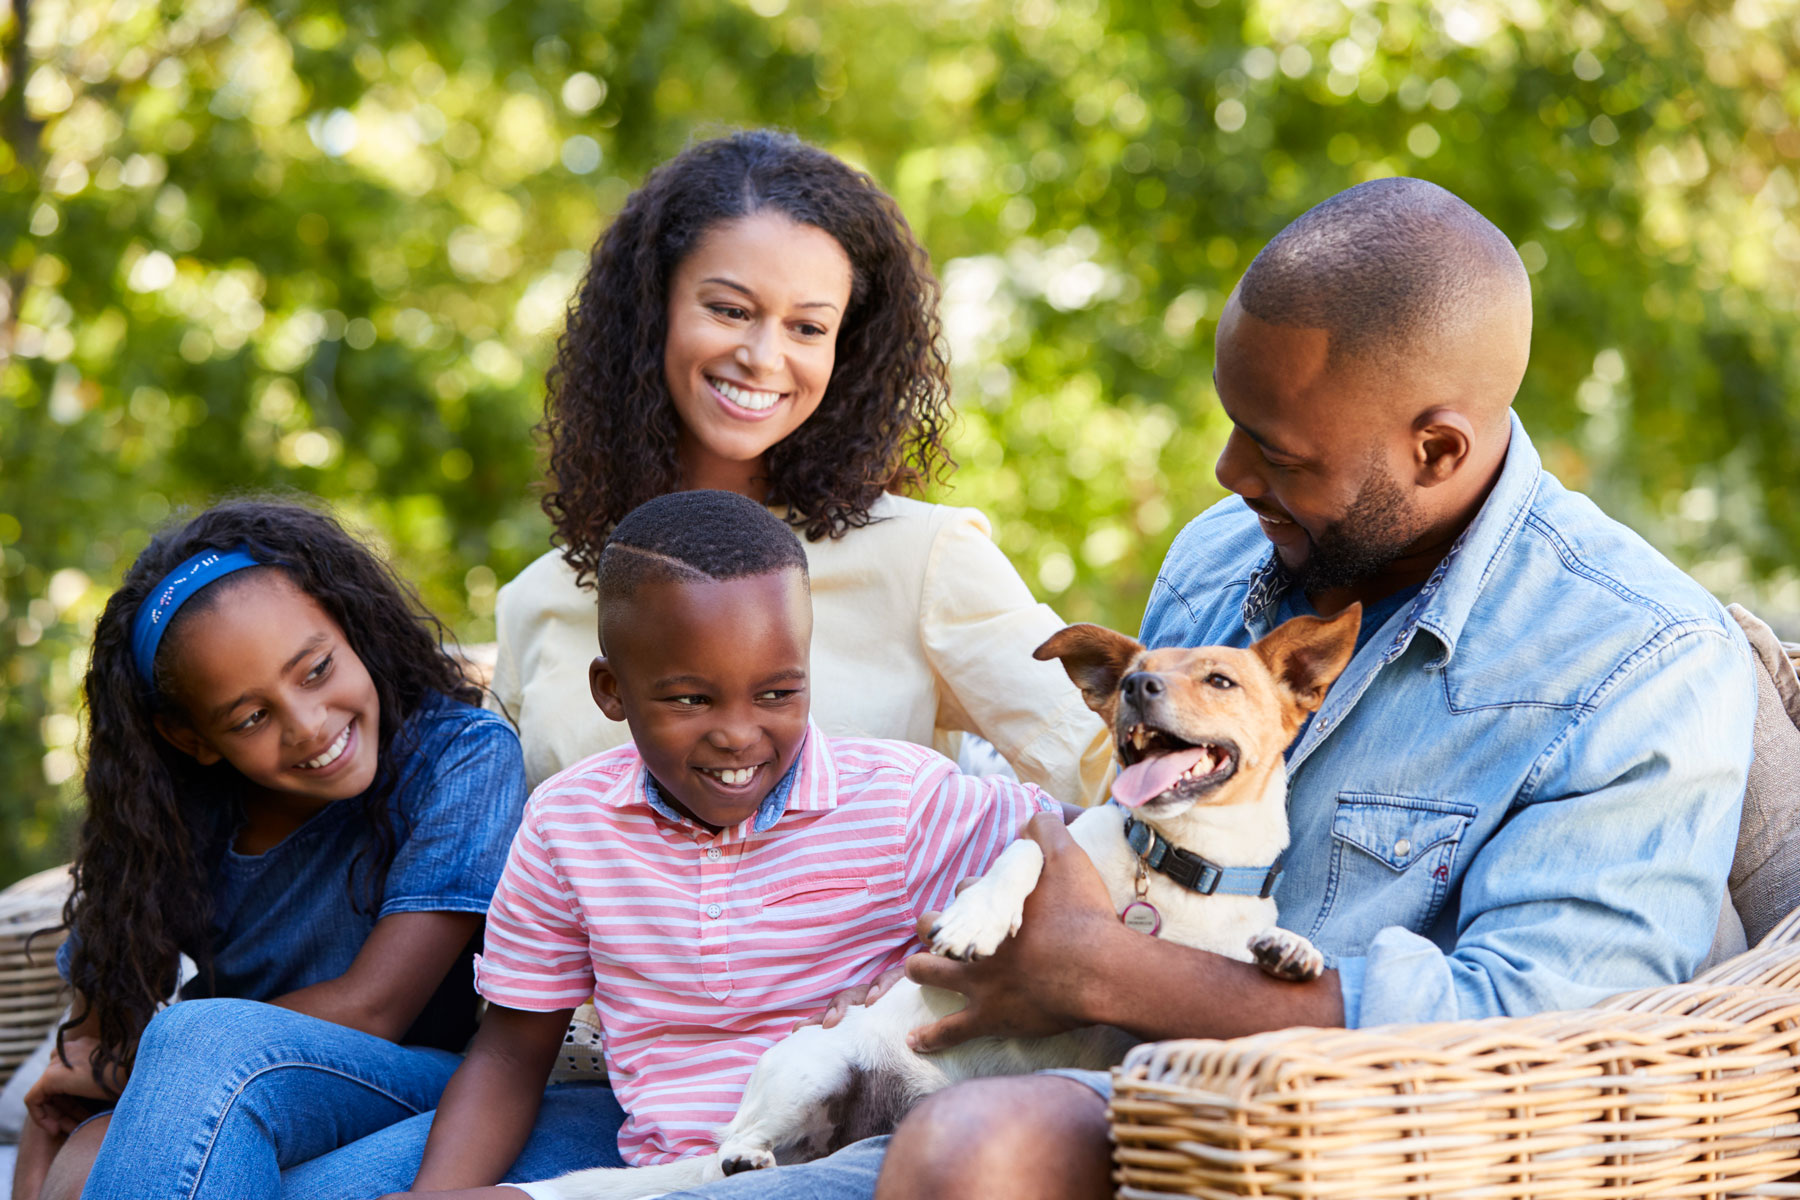 family outdoors with dog, smiling